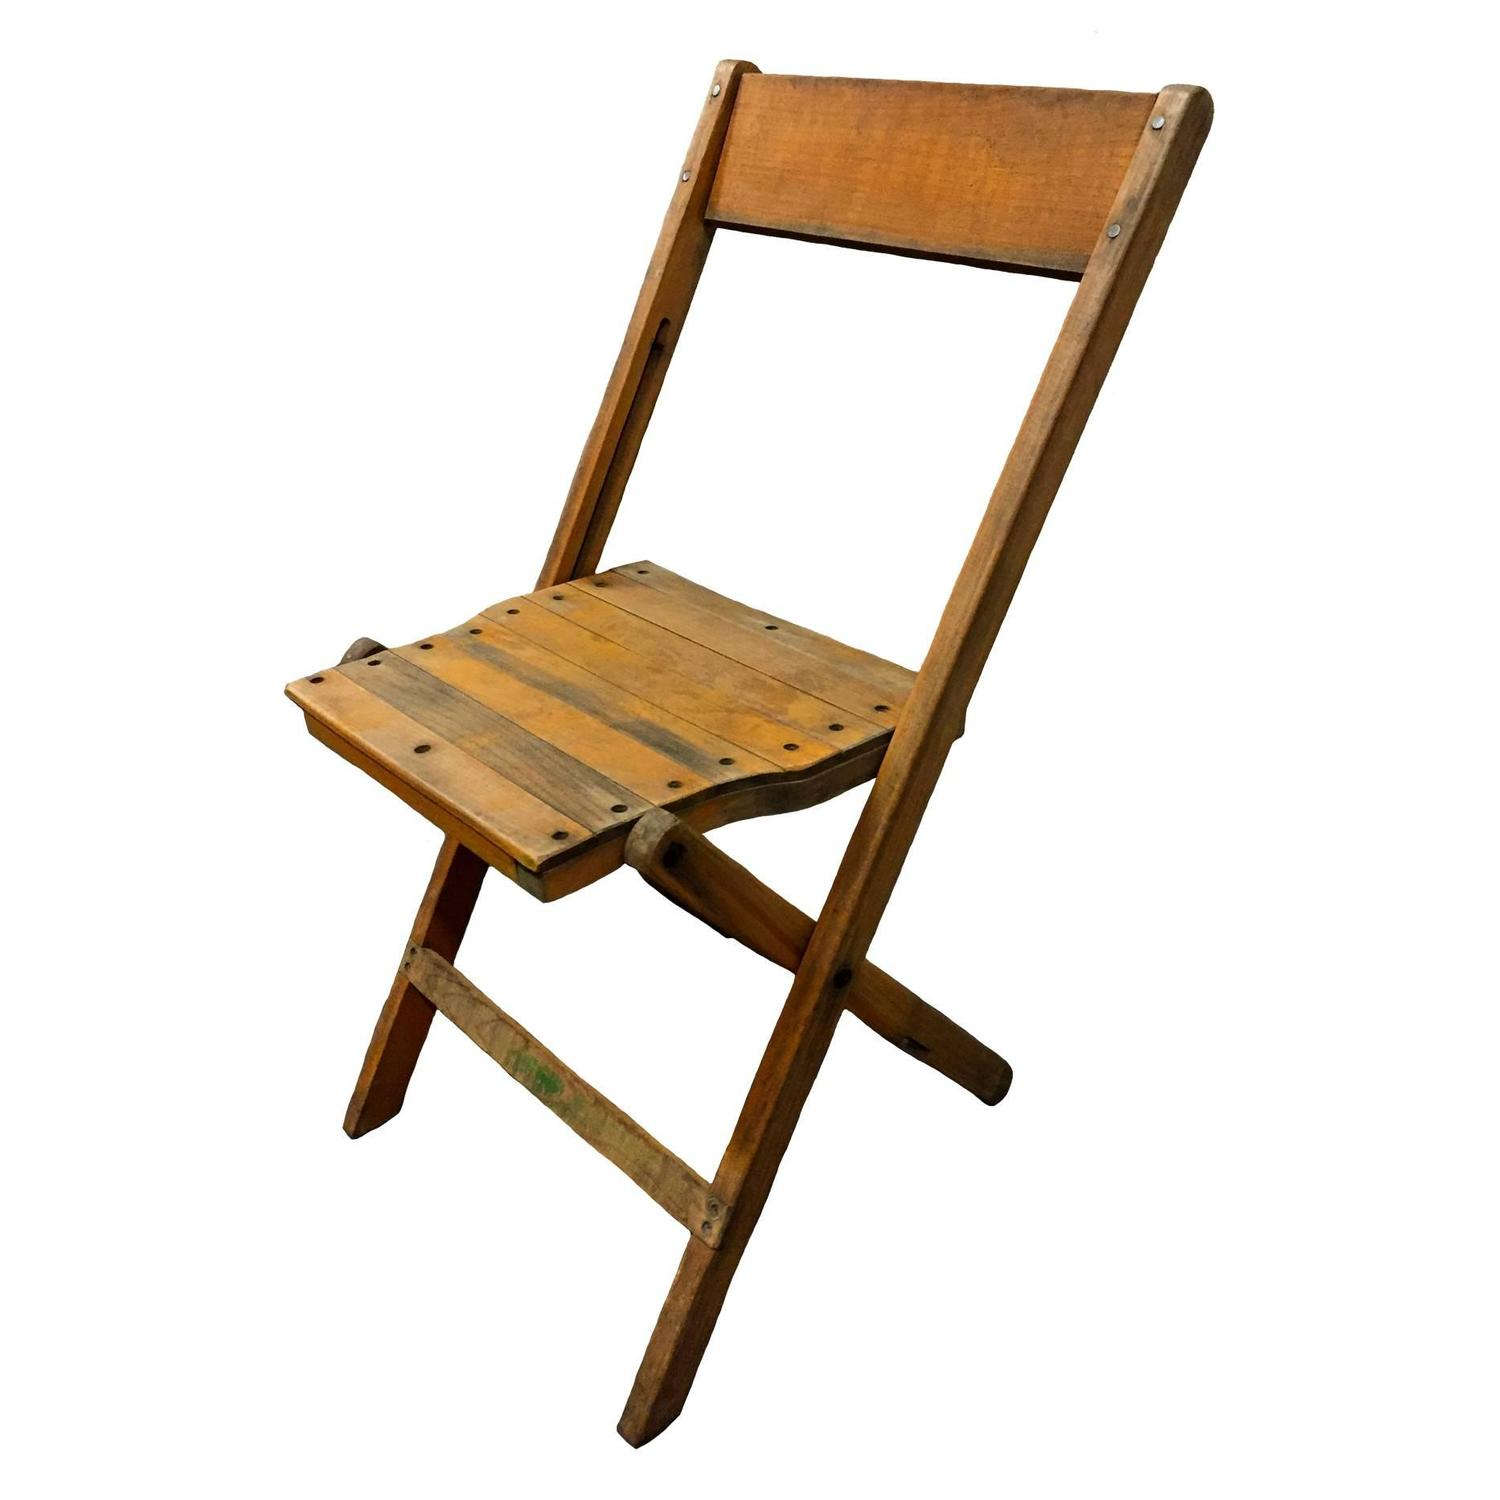 Wooden Folding Chairs For Sale At 1stdibs